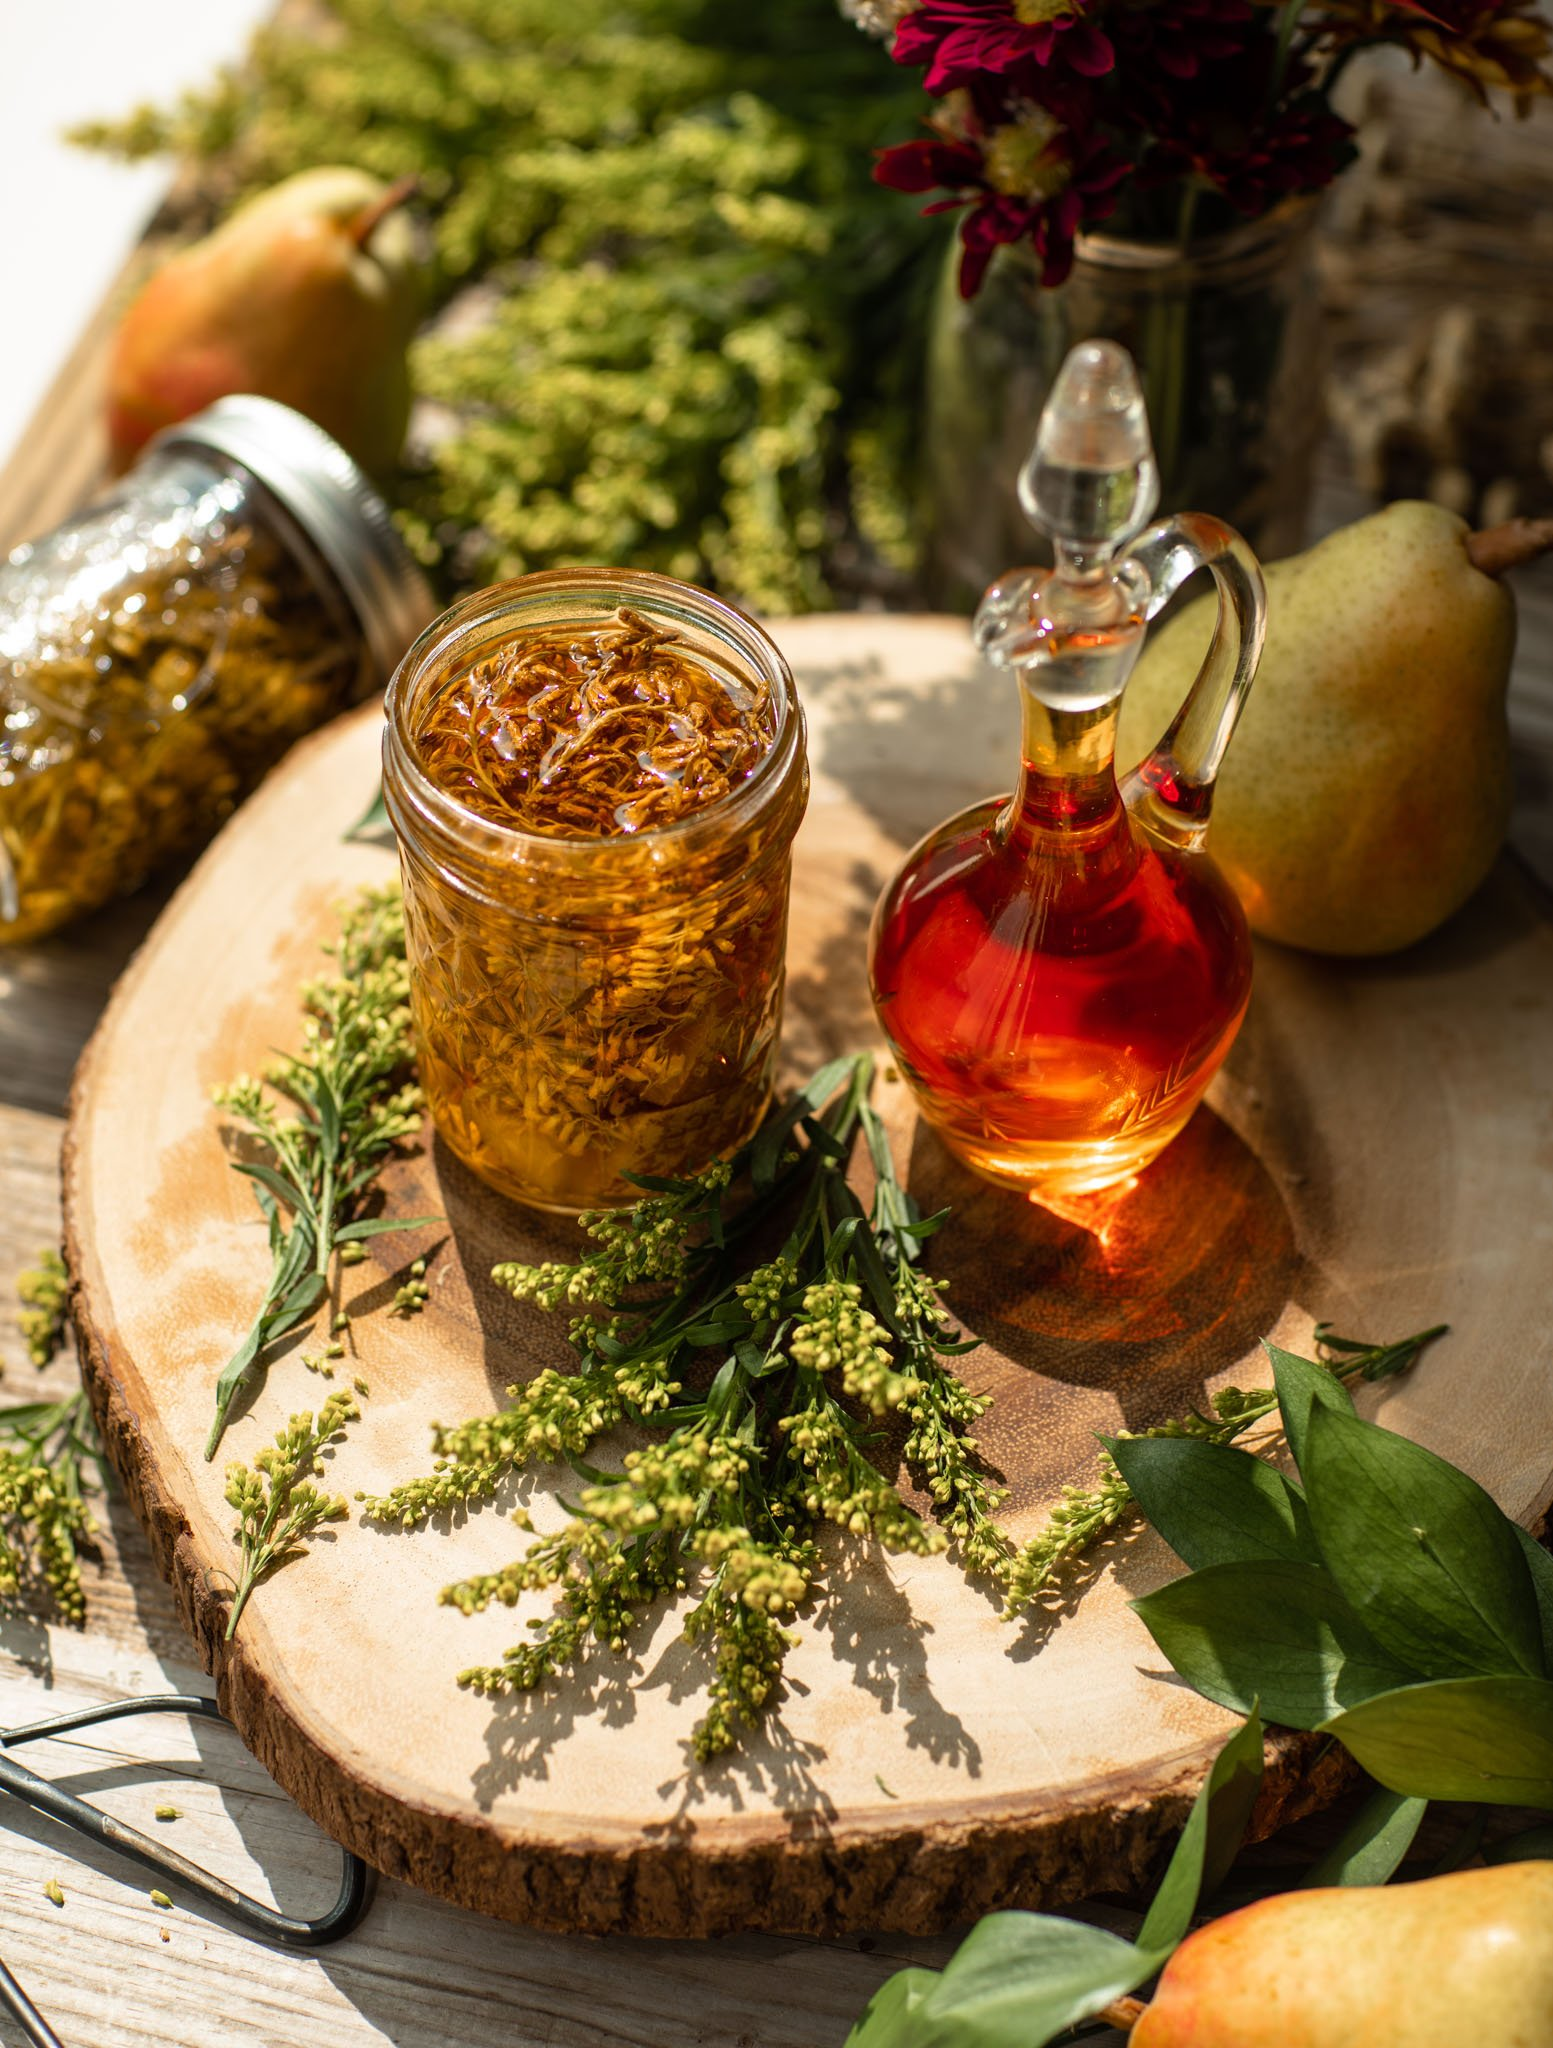 Goldenrod and Pear Cordial